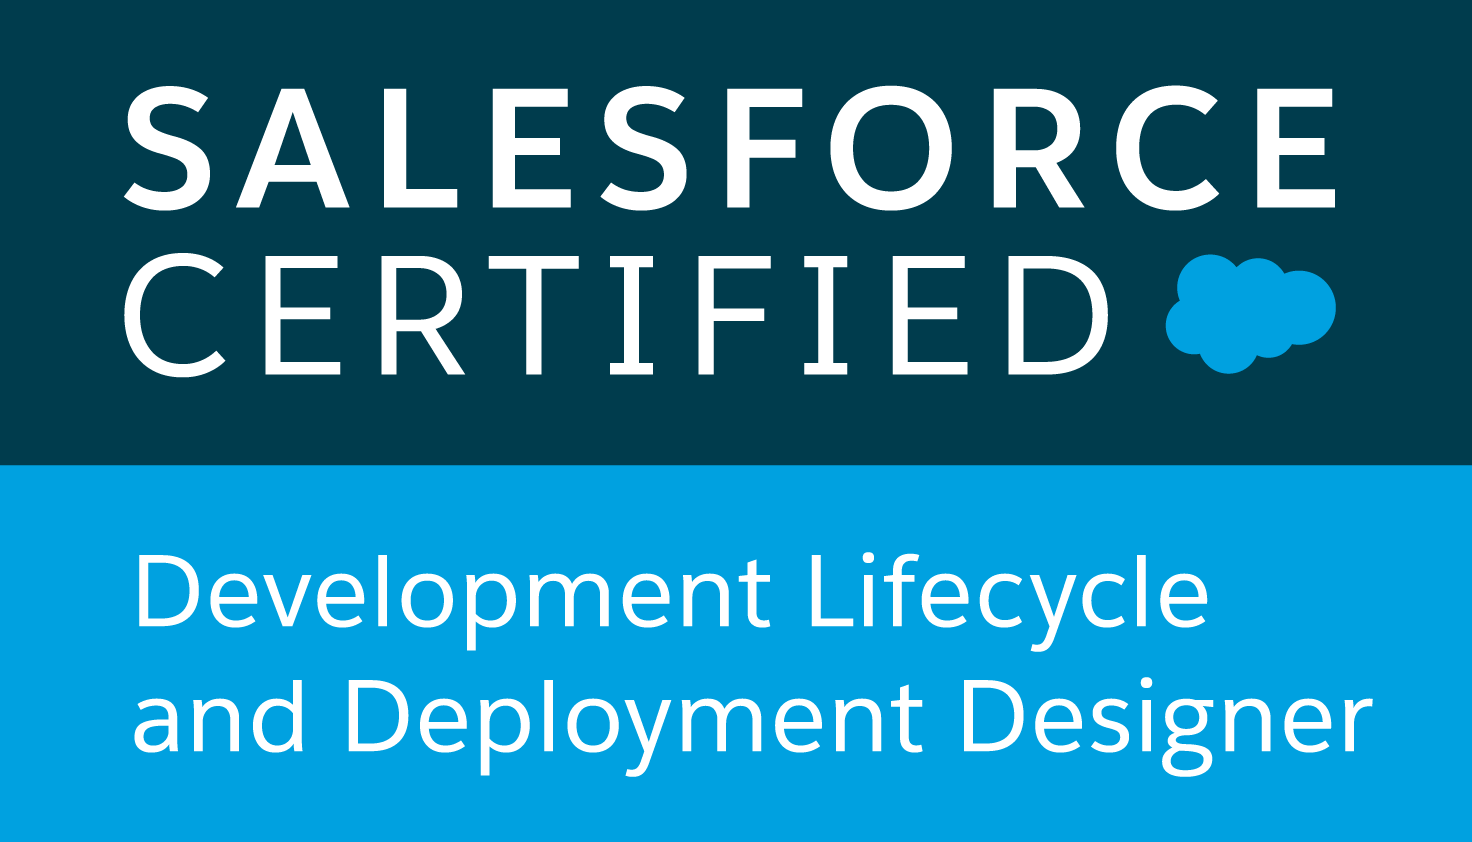 Development Lifecycle and Deployment Designer